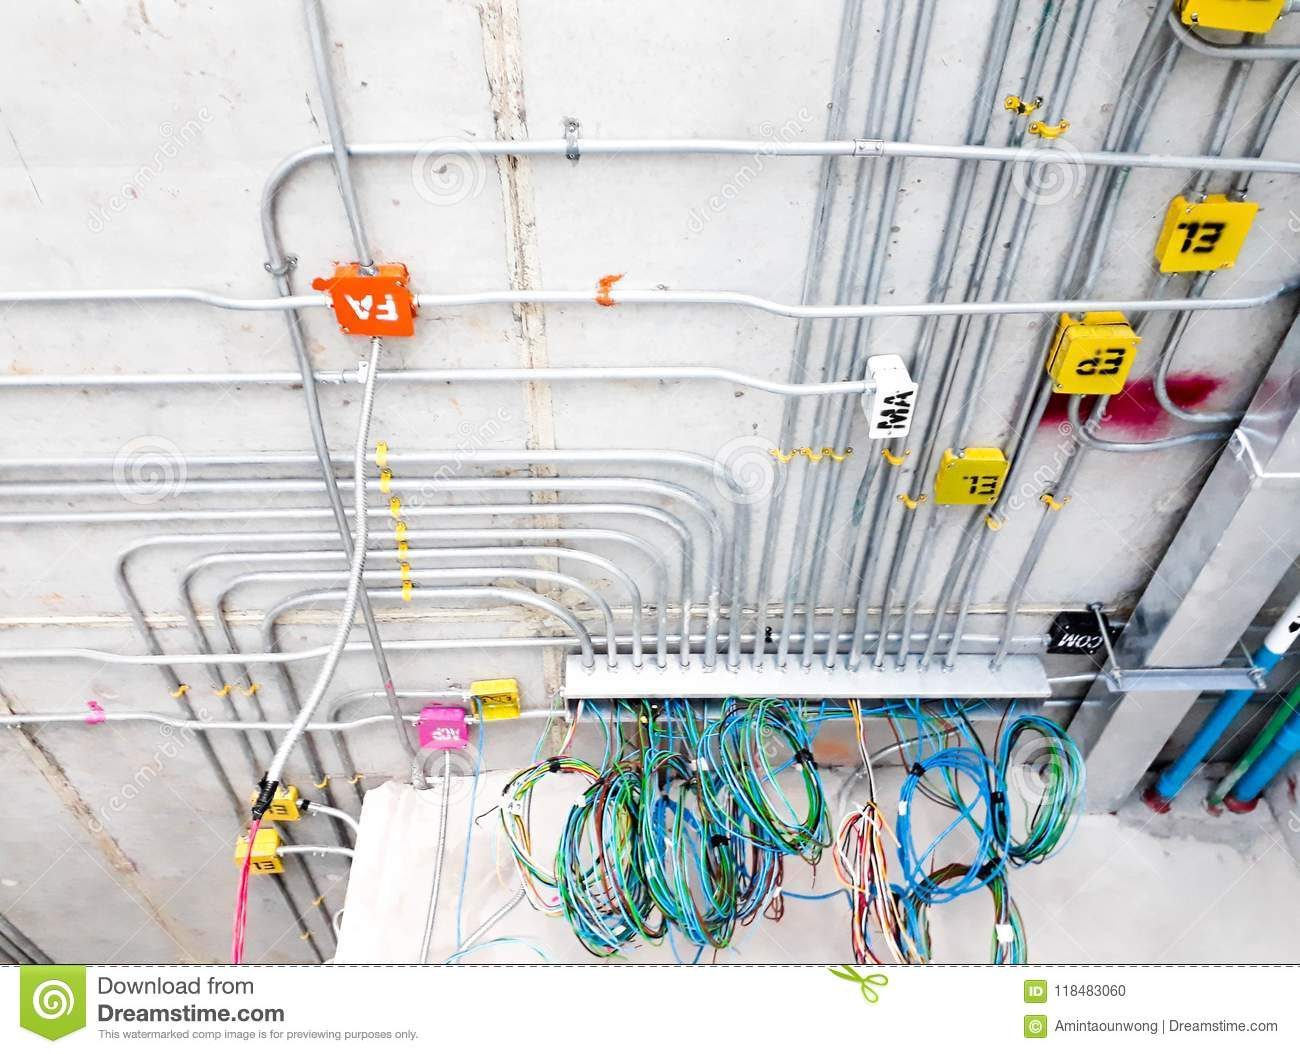 Electric Lines Power And Label On The Ceiling Stock Photo Image Of Electrical Wiring Pipes